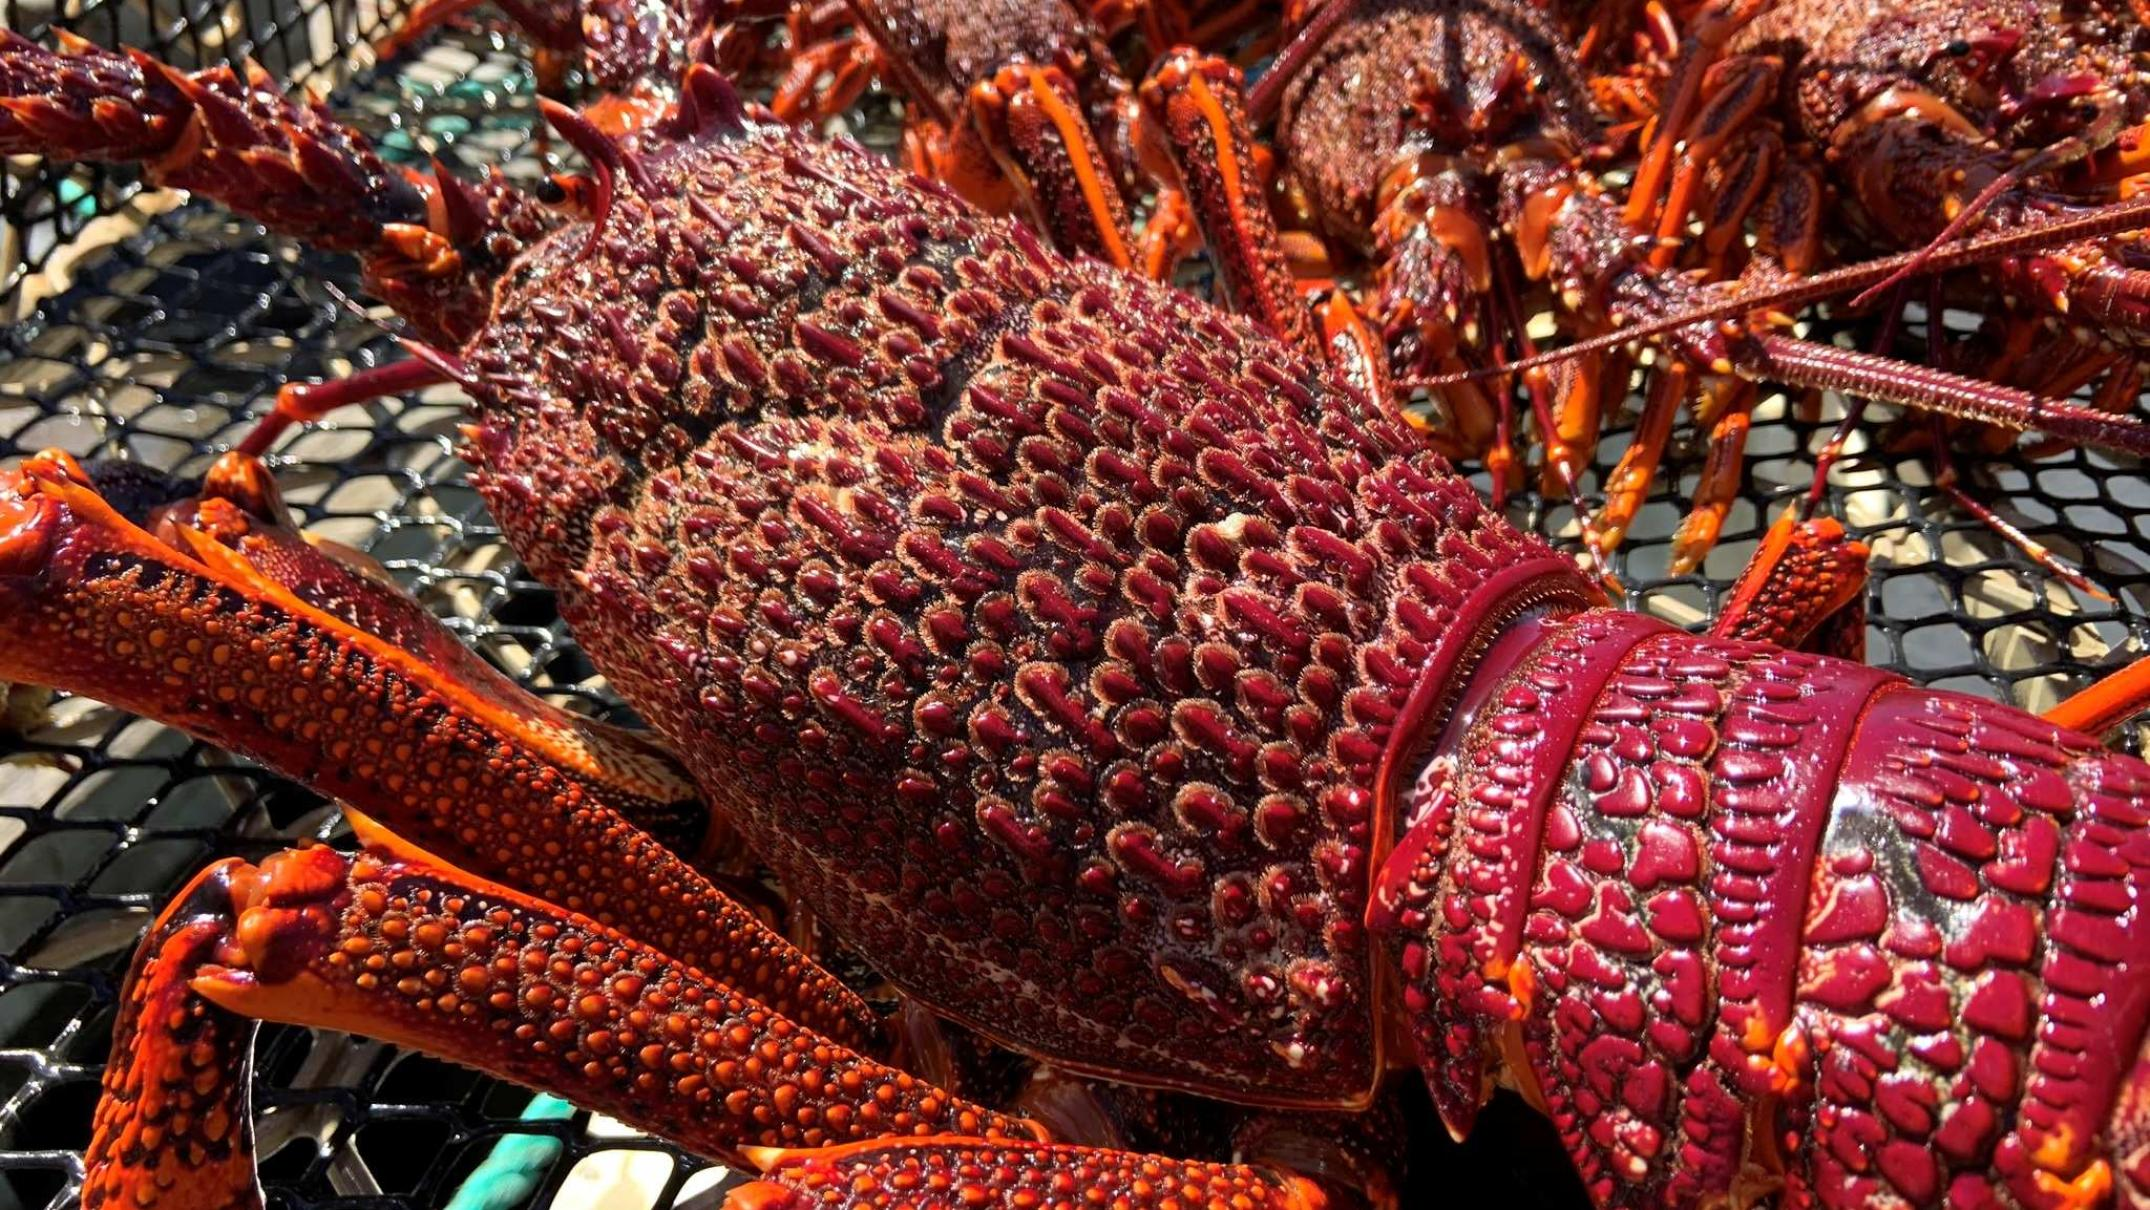 southern-rock-lobster-industry-fears-seismic-testing-in-bass-strait-could-threaten-crayfish-populations